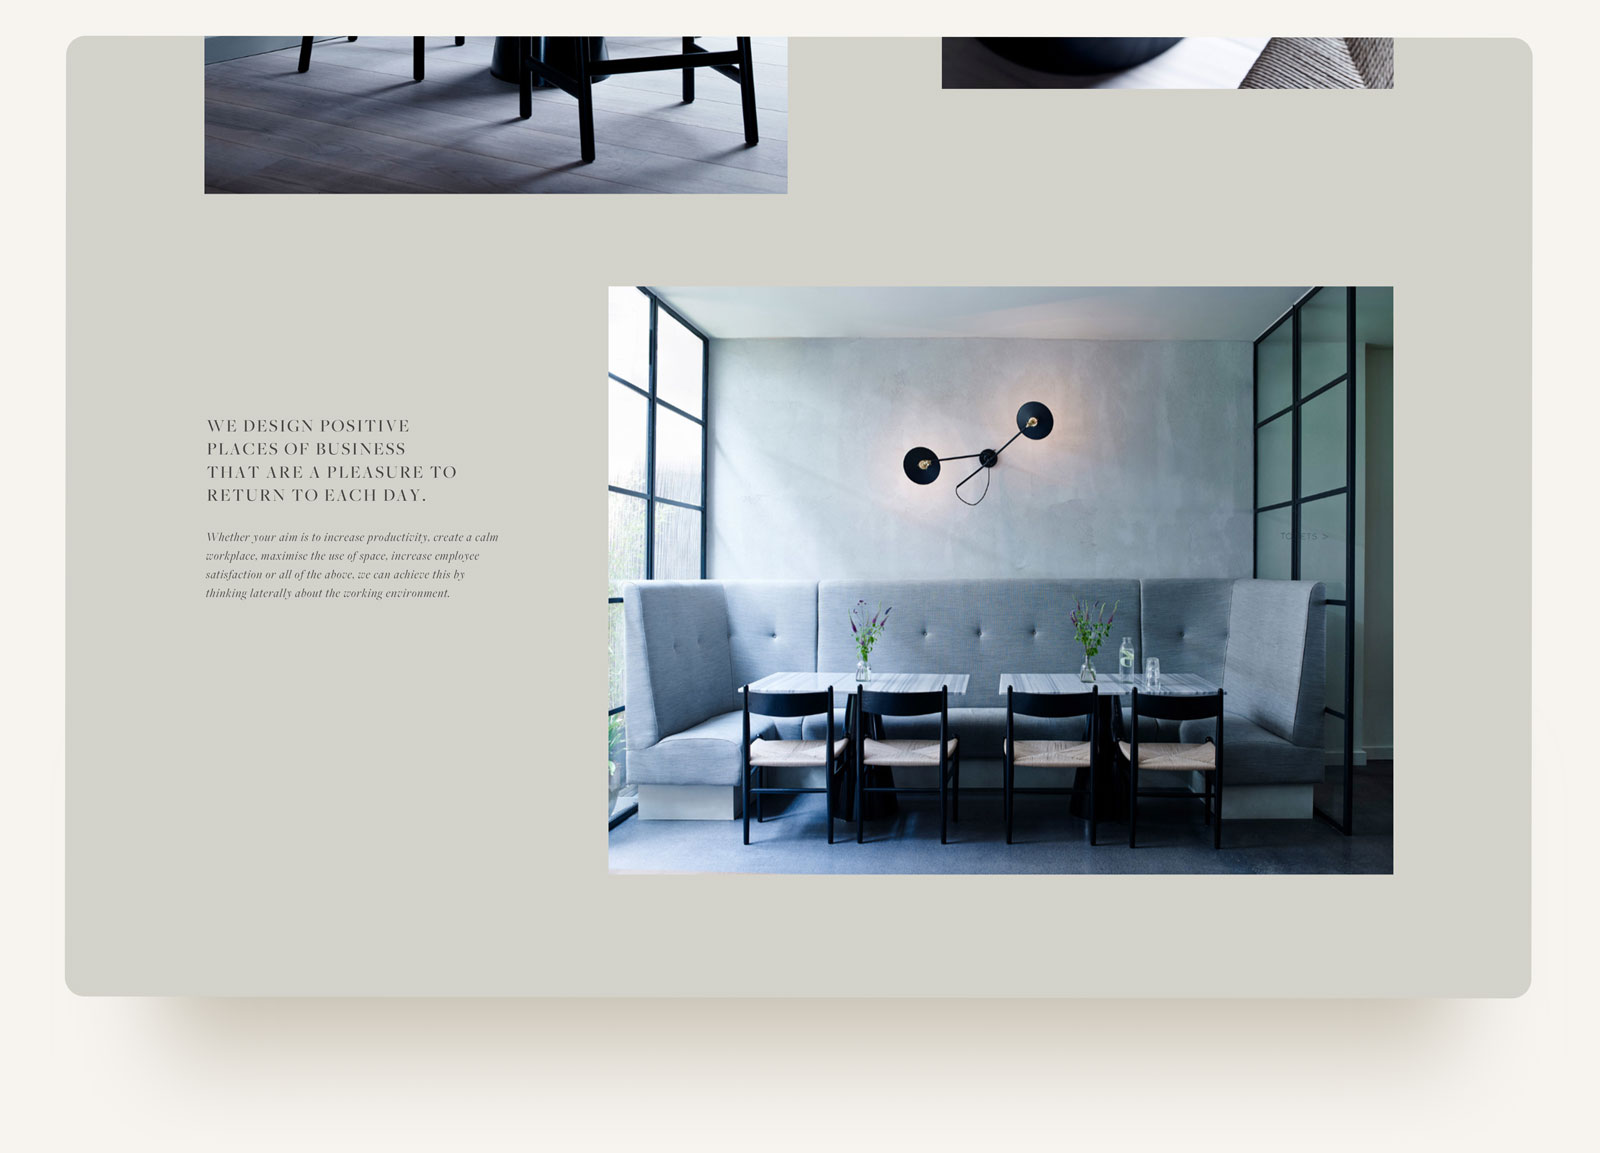 House of Grey interiors studio portfolio editorial layout with simple typography. Squarespace website design and custom build by Brittany Hurdle beckon webeckon